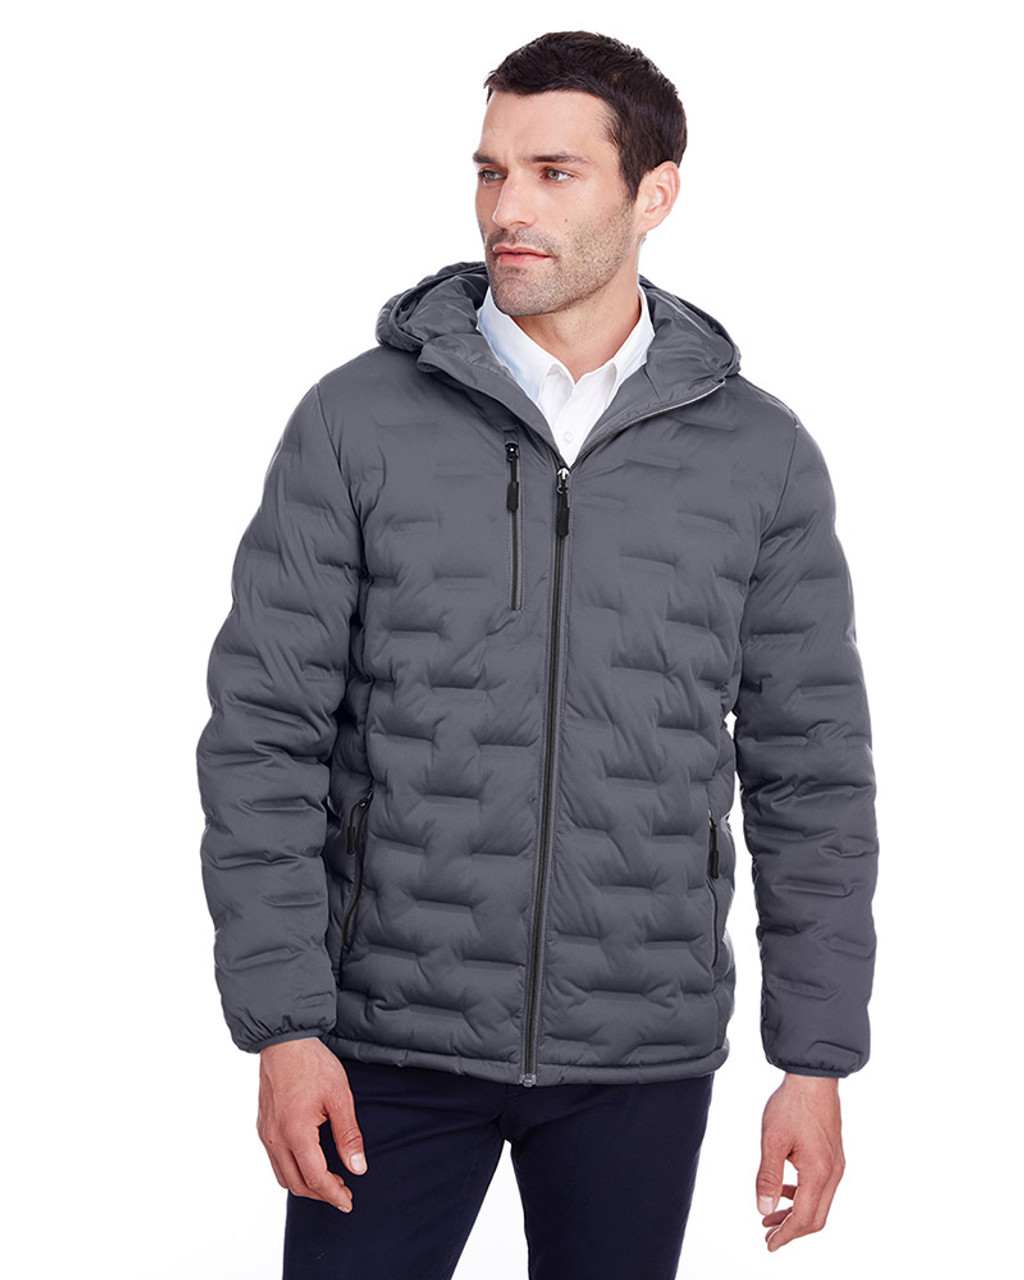 Carbon/Black - NE708 North End Men's Loft Puffer Jacket | Blankclothing.ca